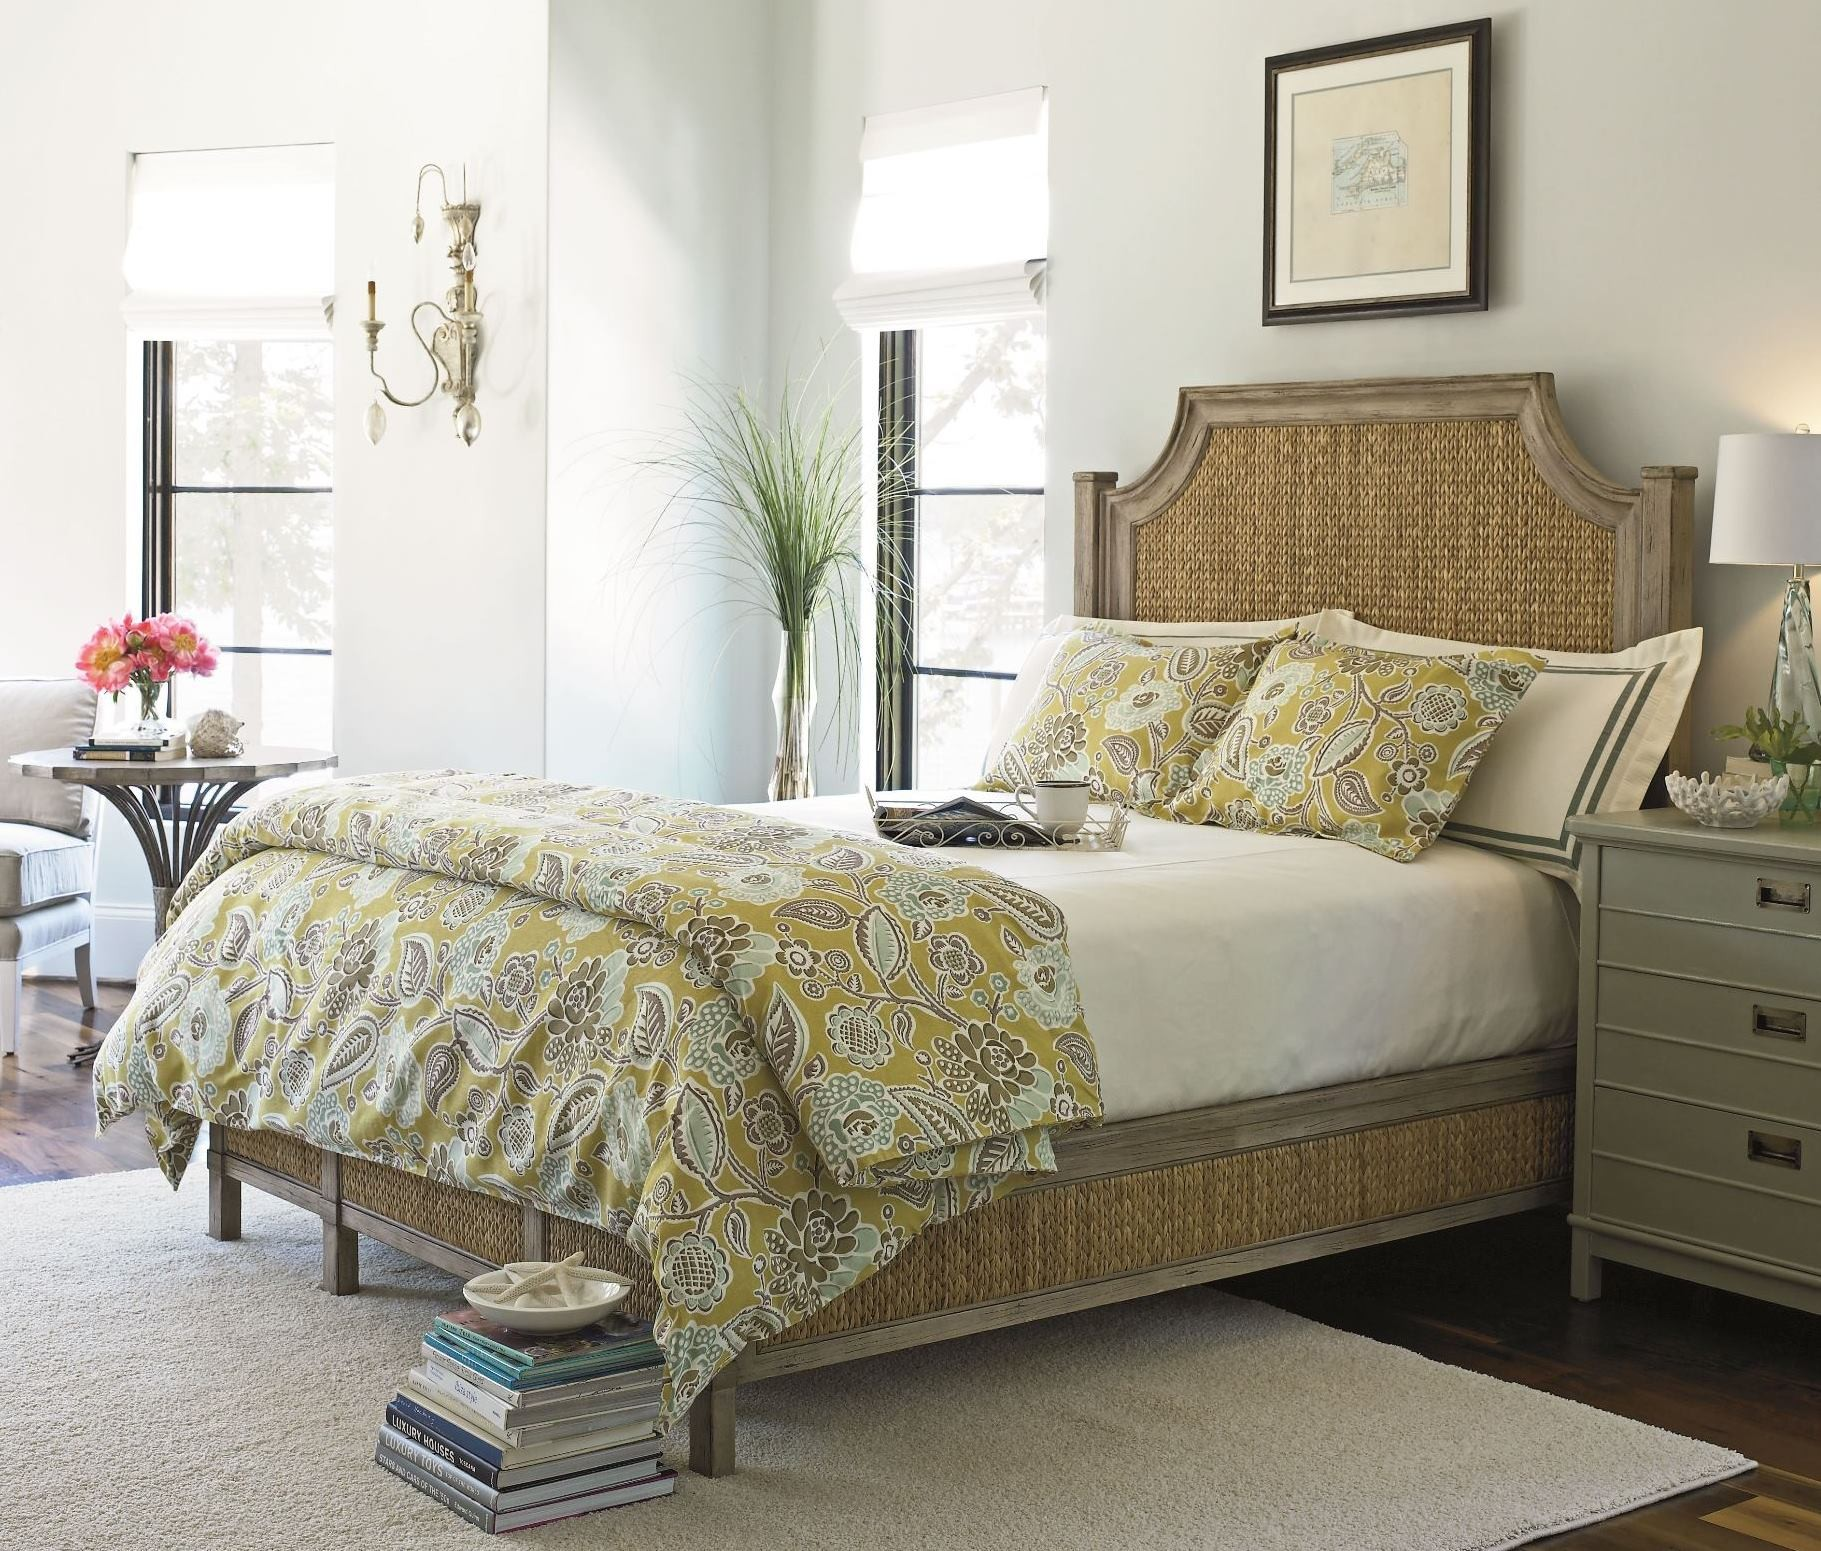 Coastal Living Resort Weathered Pier Water Meadow Woven Bedroom Set from Coas